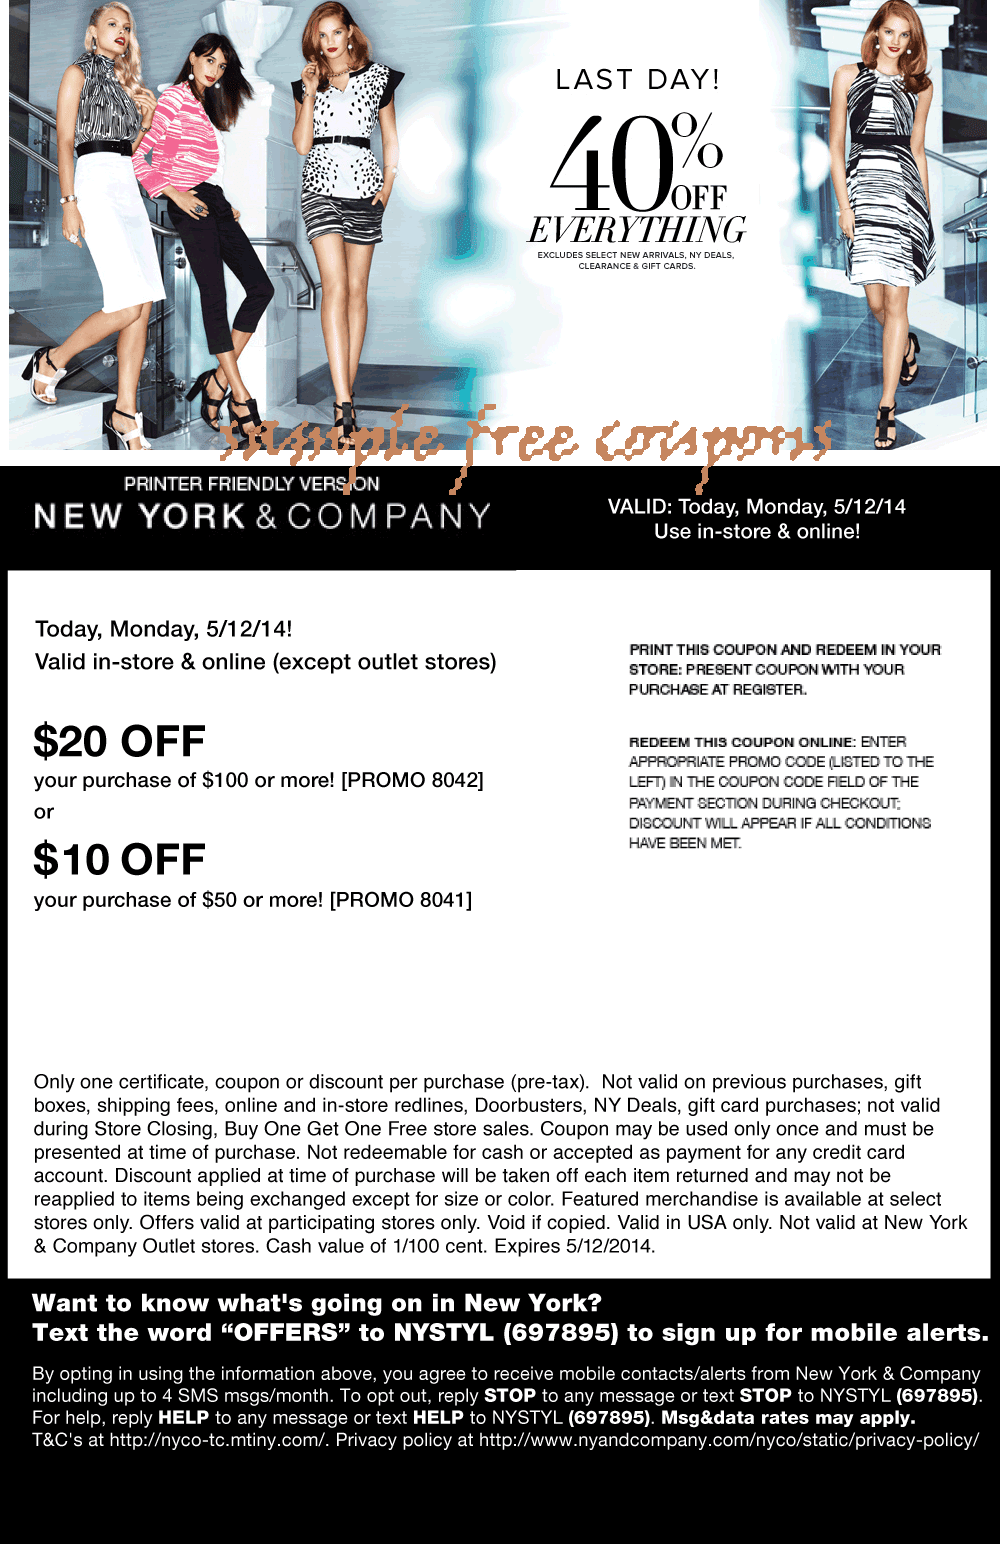 Ny & co coupon code